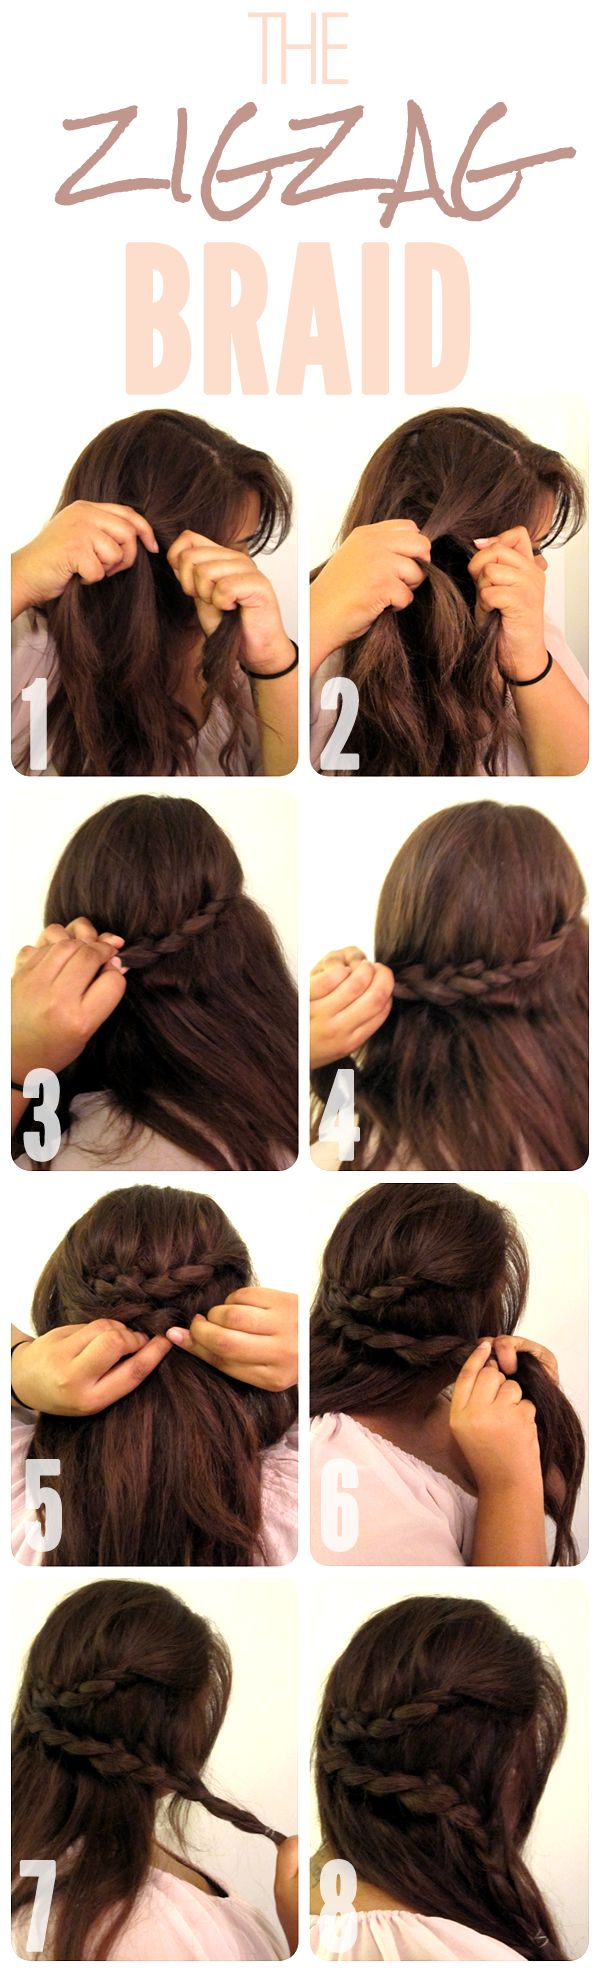 82 best braids images on pinterest | hairstyles, make up and braids